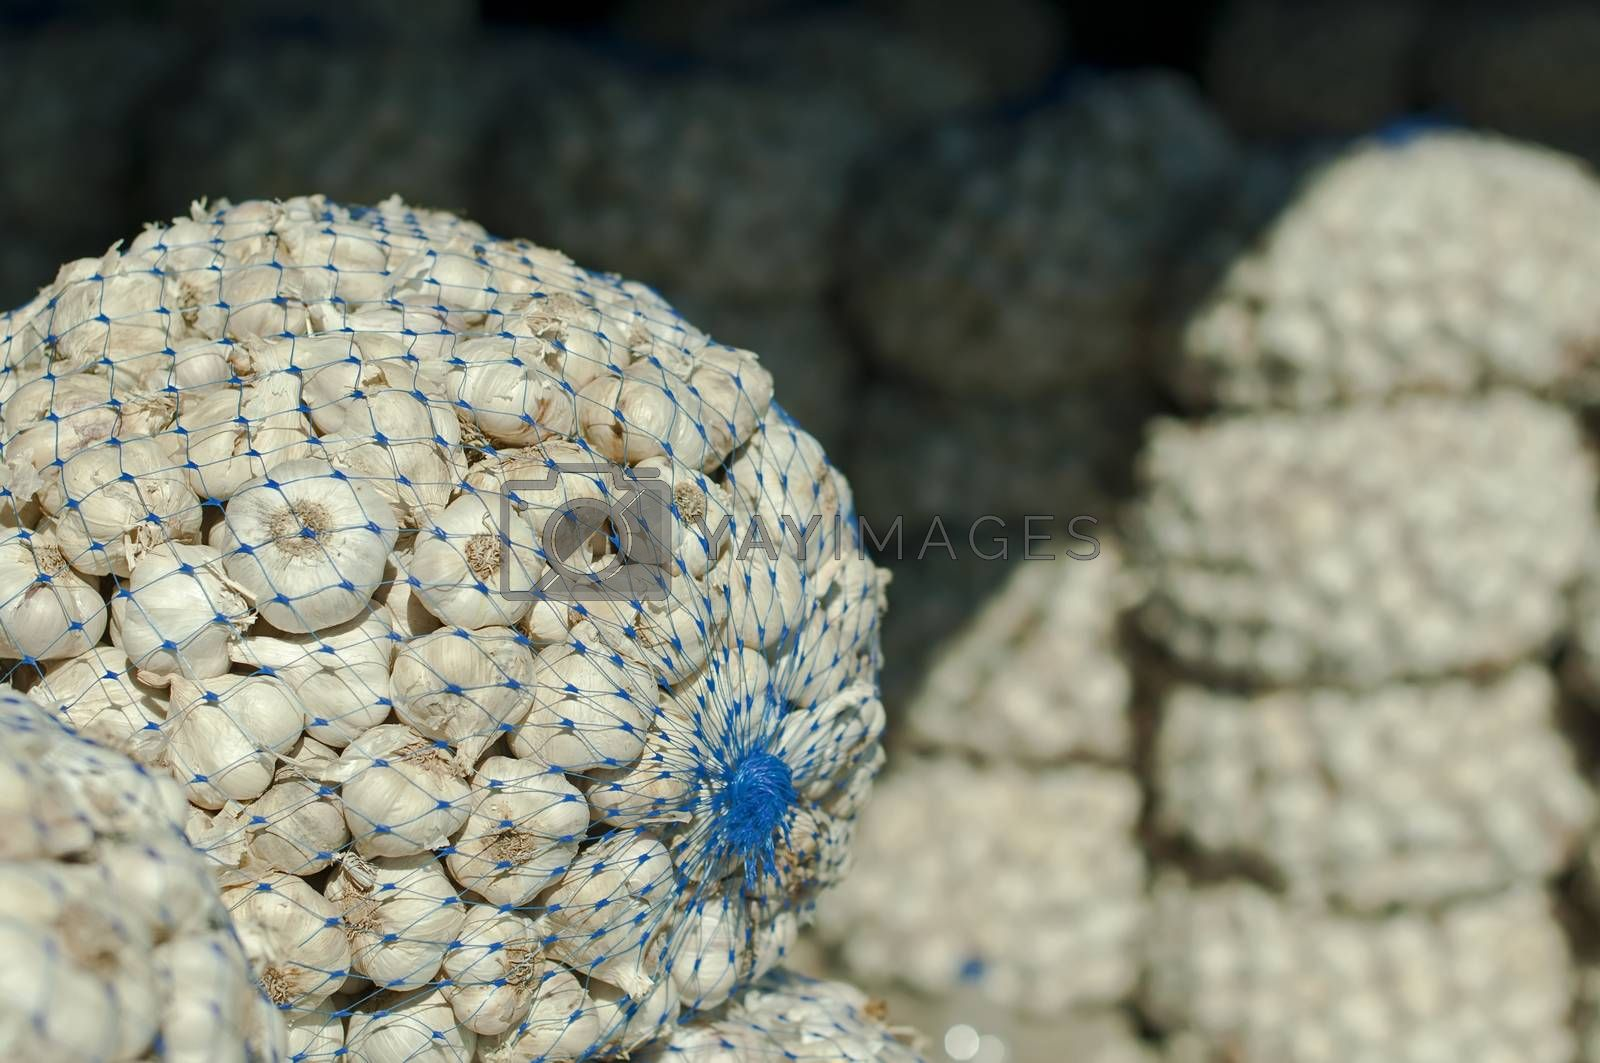 Mesh bag with garlic in Wholesale market